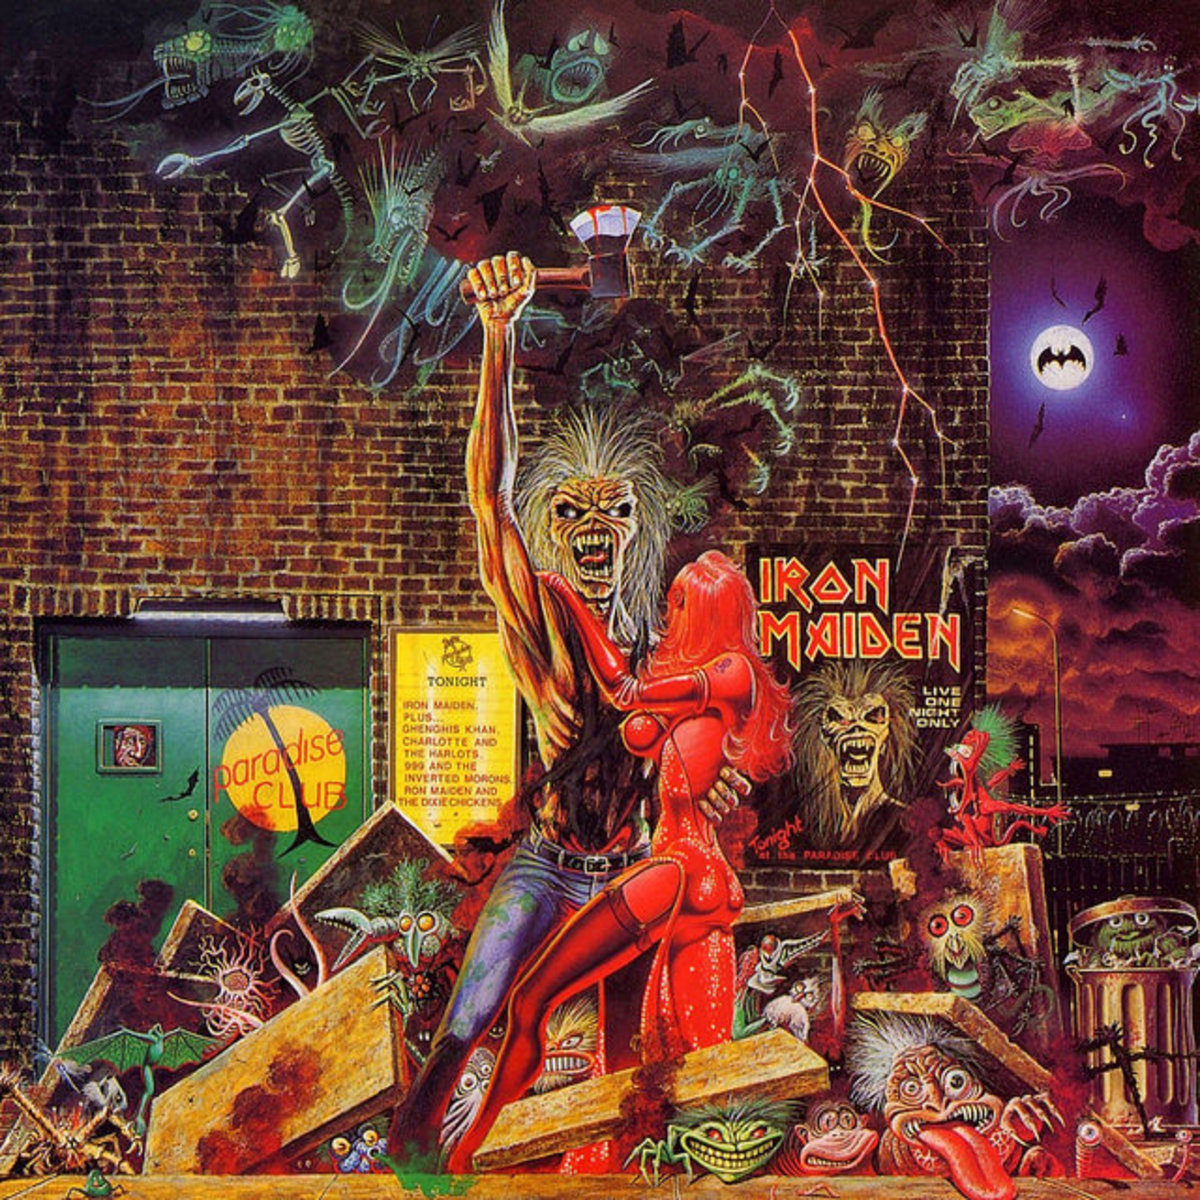 "Iron Maiden ""Bring Your Daughter to the Slaughter"" EMI 12EMP 171 12"" Vinyl Single UK Pressing (1990) Cover Art by Derek Riggs"